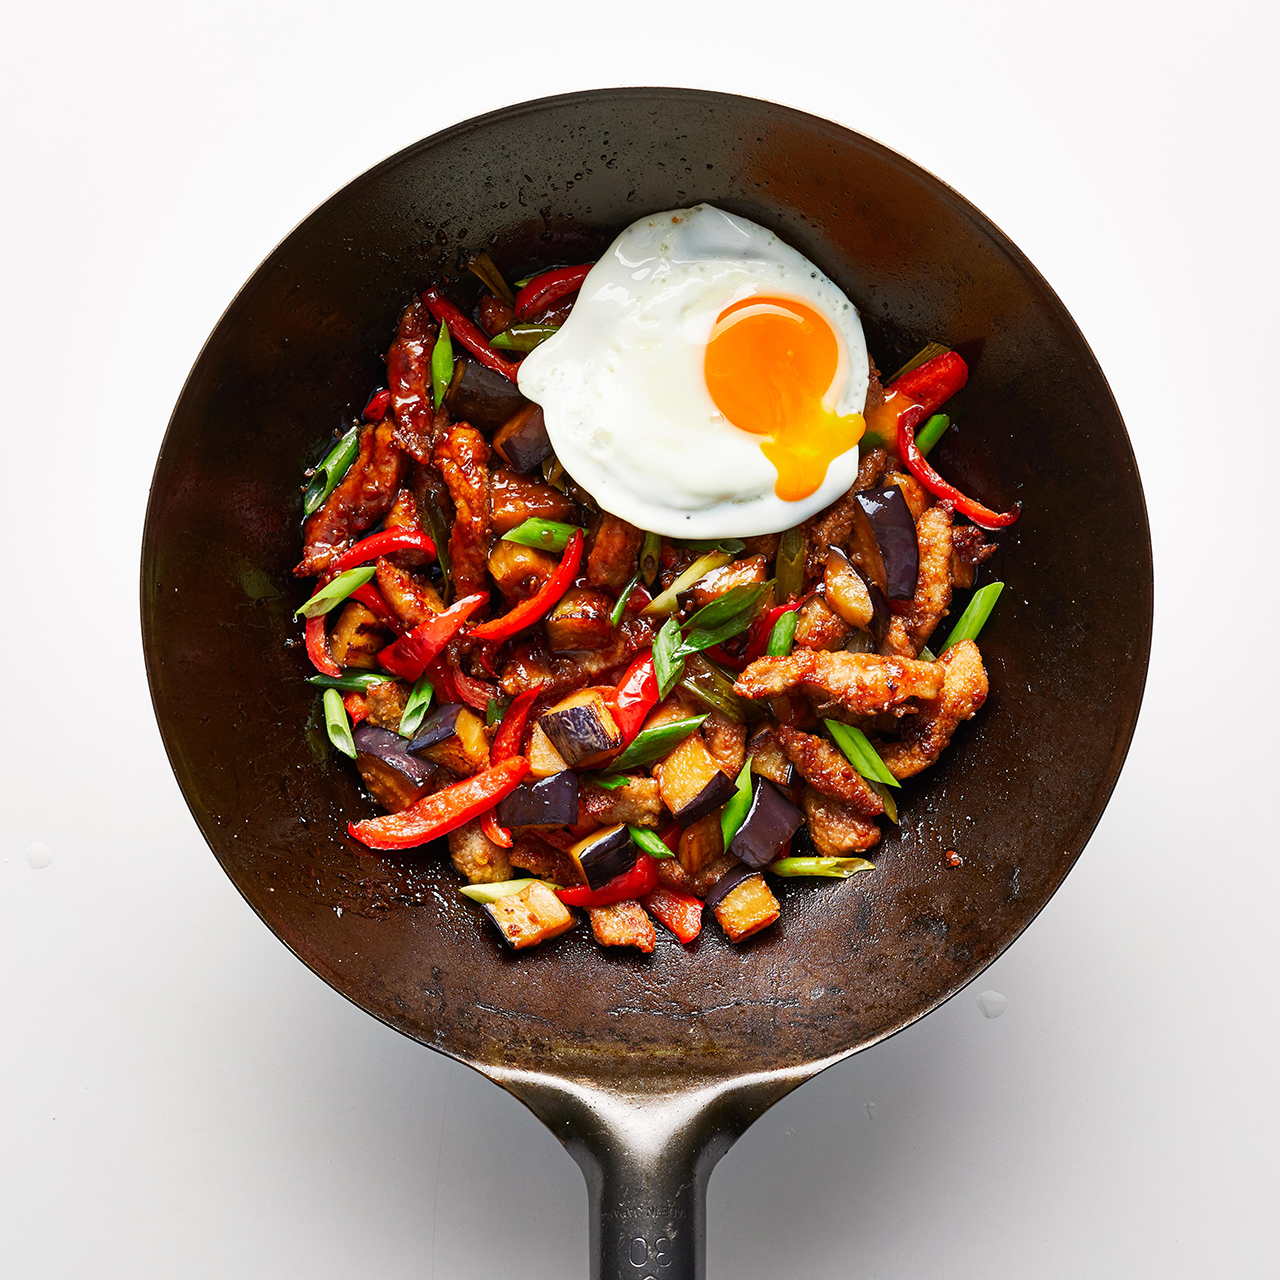 Skillet with stir fry and runny egg